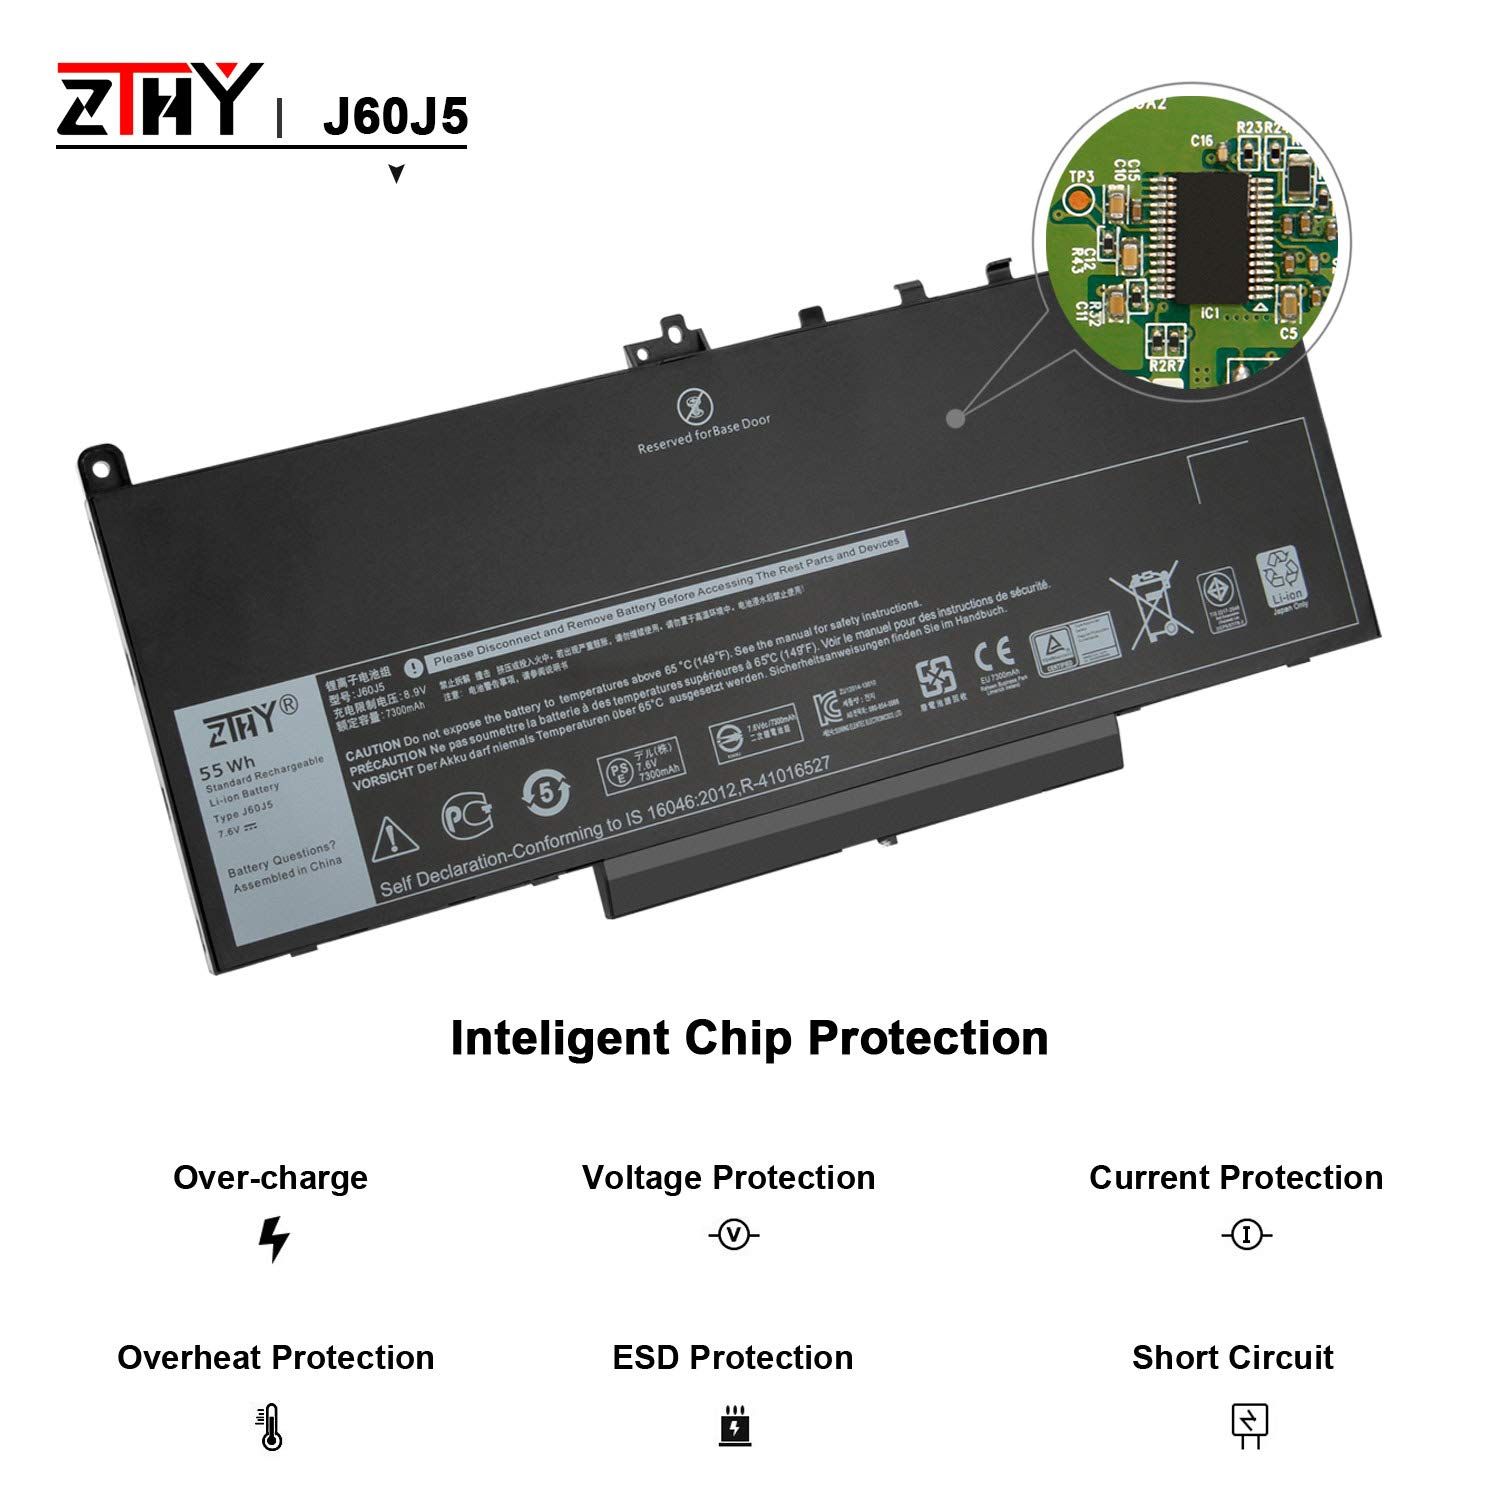 ZTHY J60J5 Laptop Battery Replacement for Dell Latitude E7270 E7470 Series Notebook R1V85 451-BBSX 451-BBSY 451-BBSU MC34Y 242WD PDNM2 7.6V 55WH by ZTHY (Image #4)